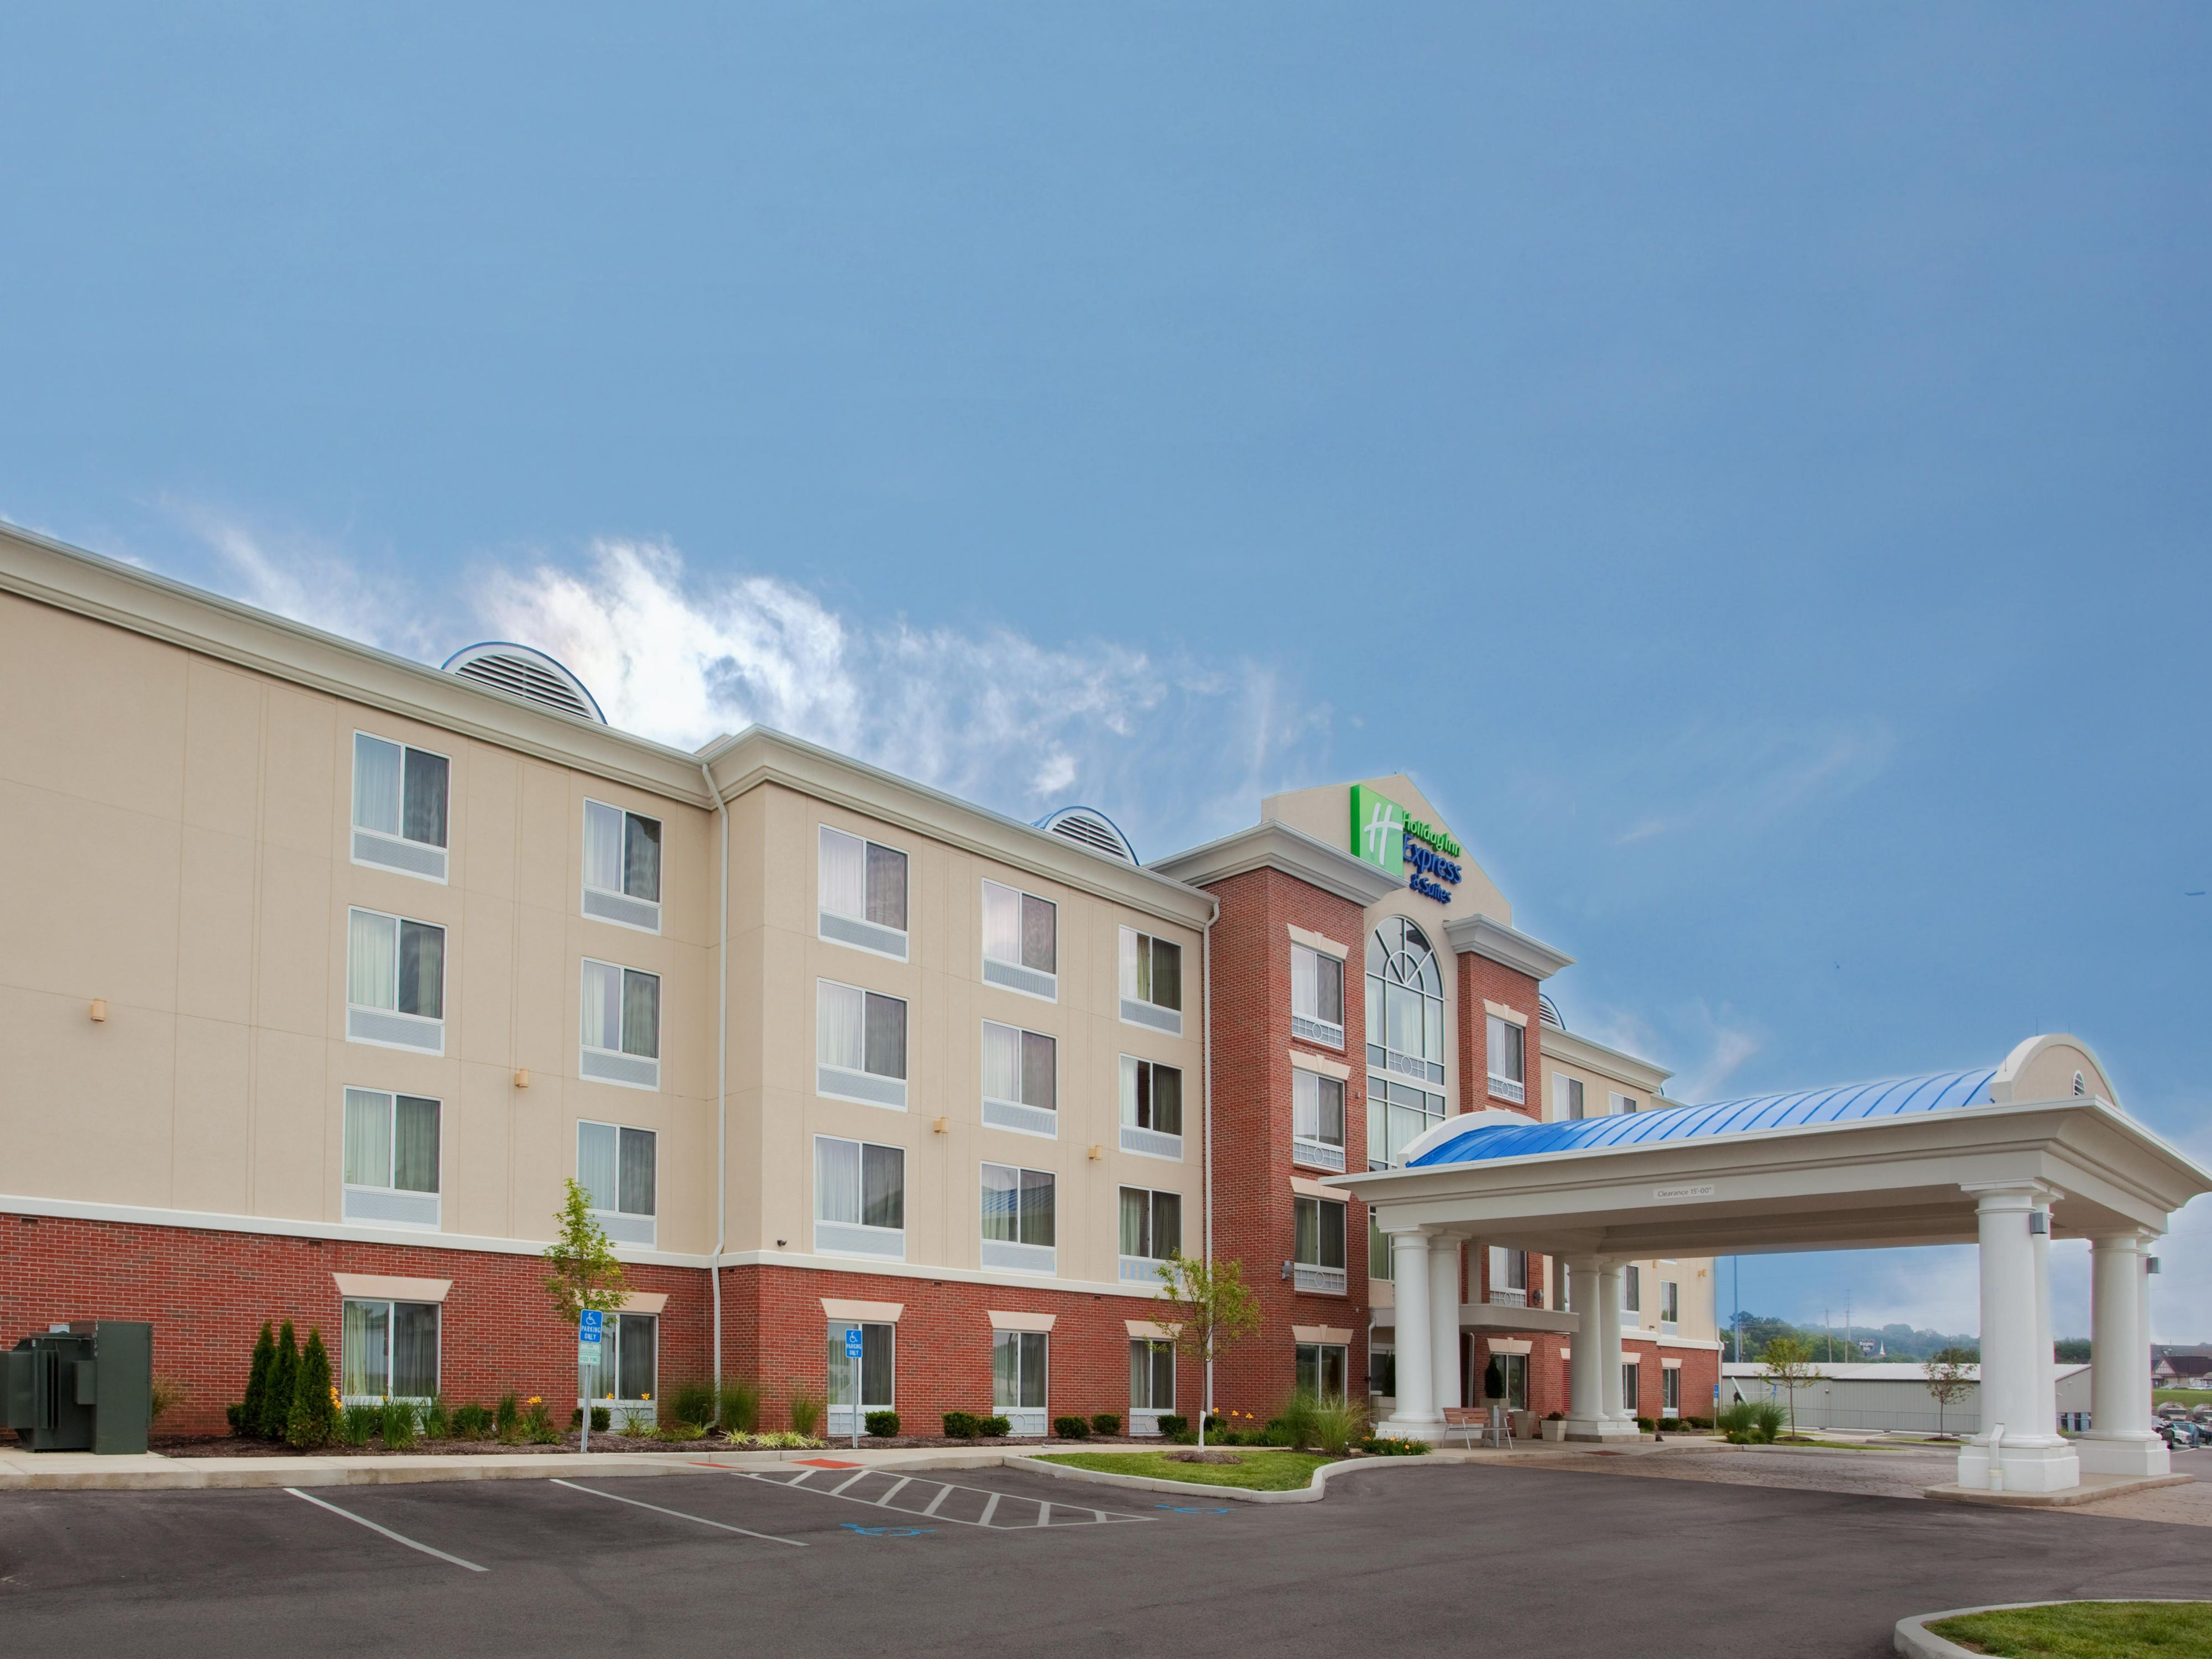 The lovely front view of the Franklin Ohio Holiday Inn Express